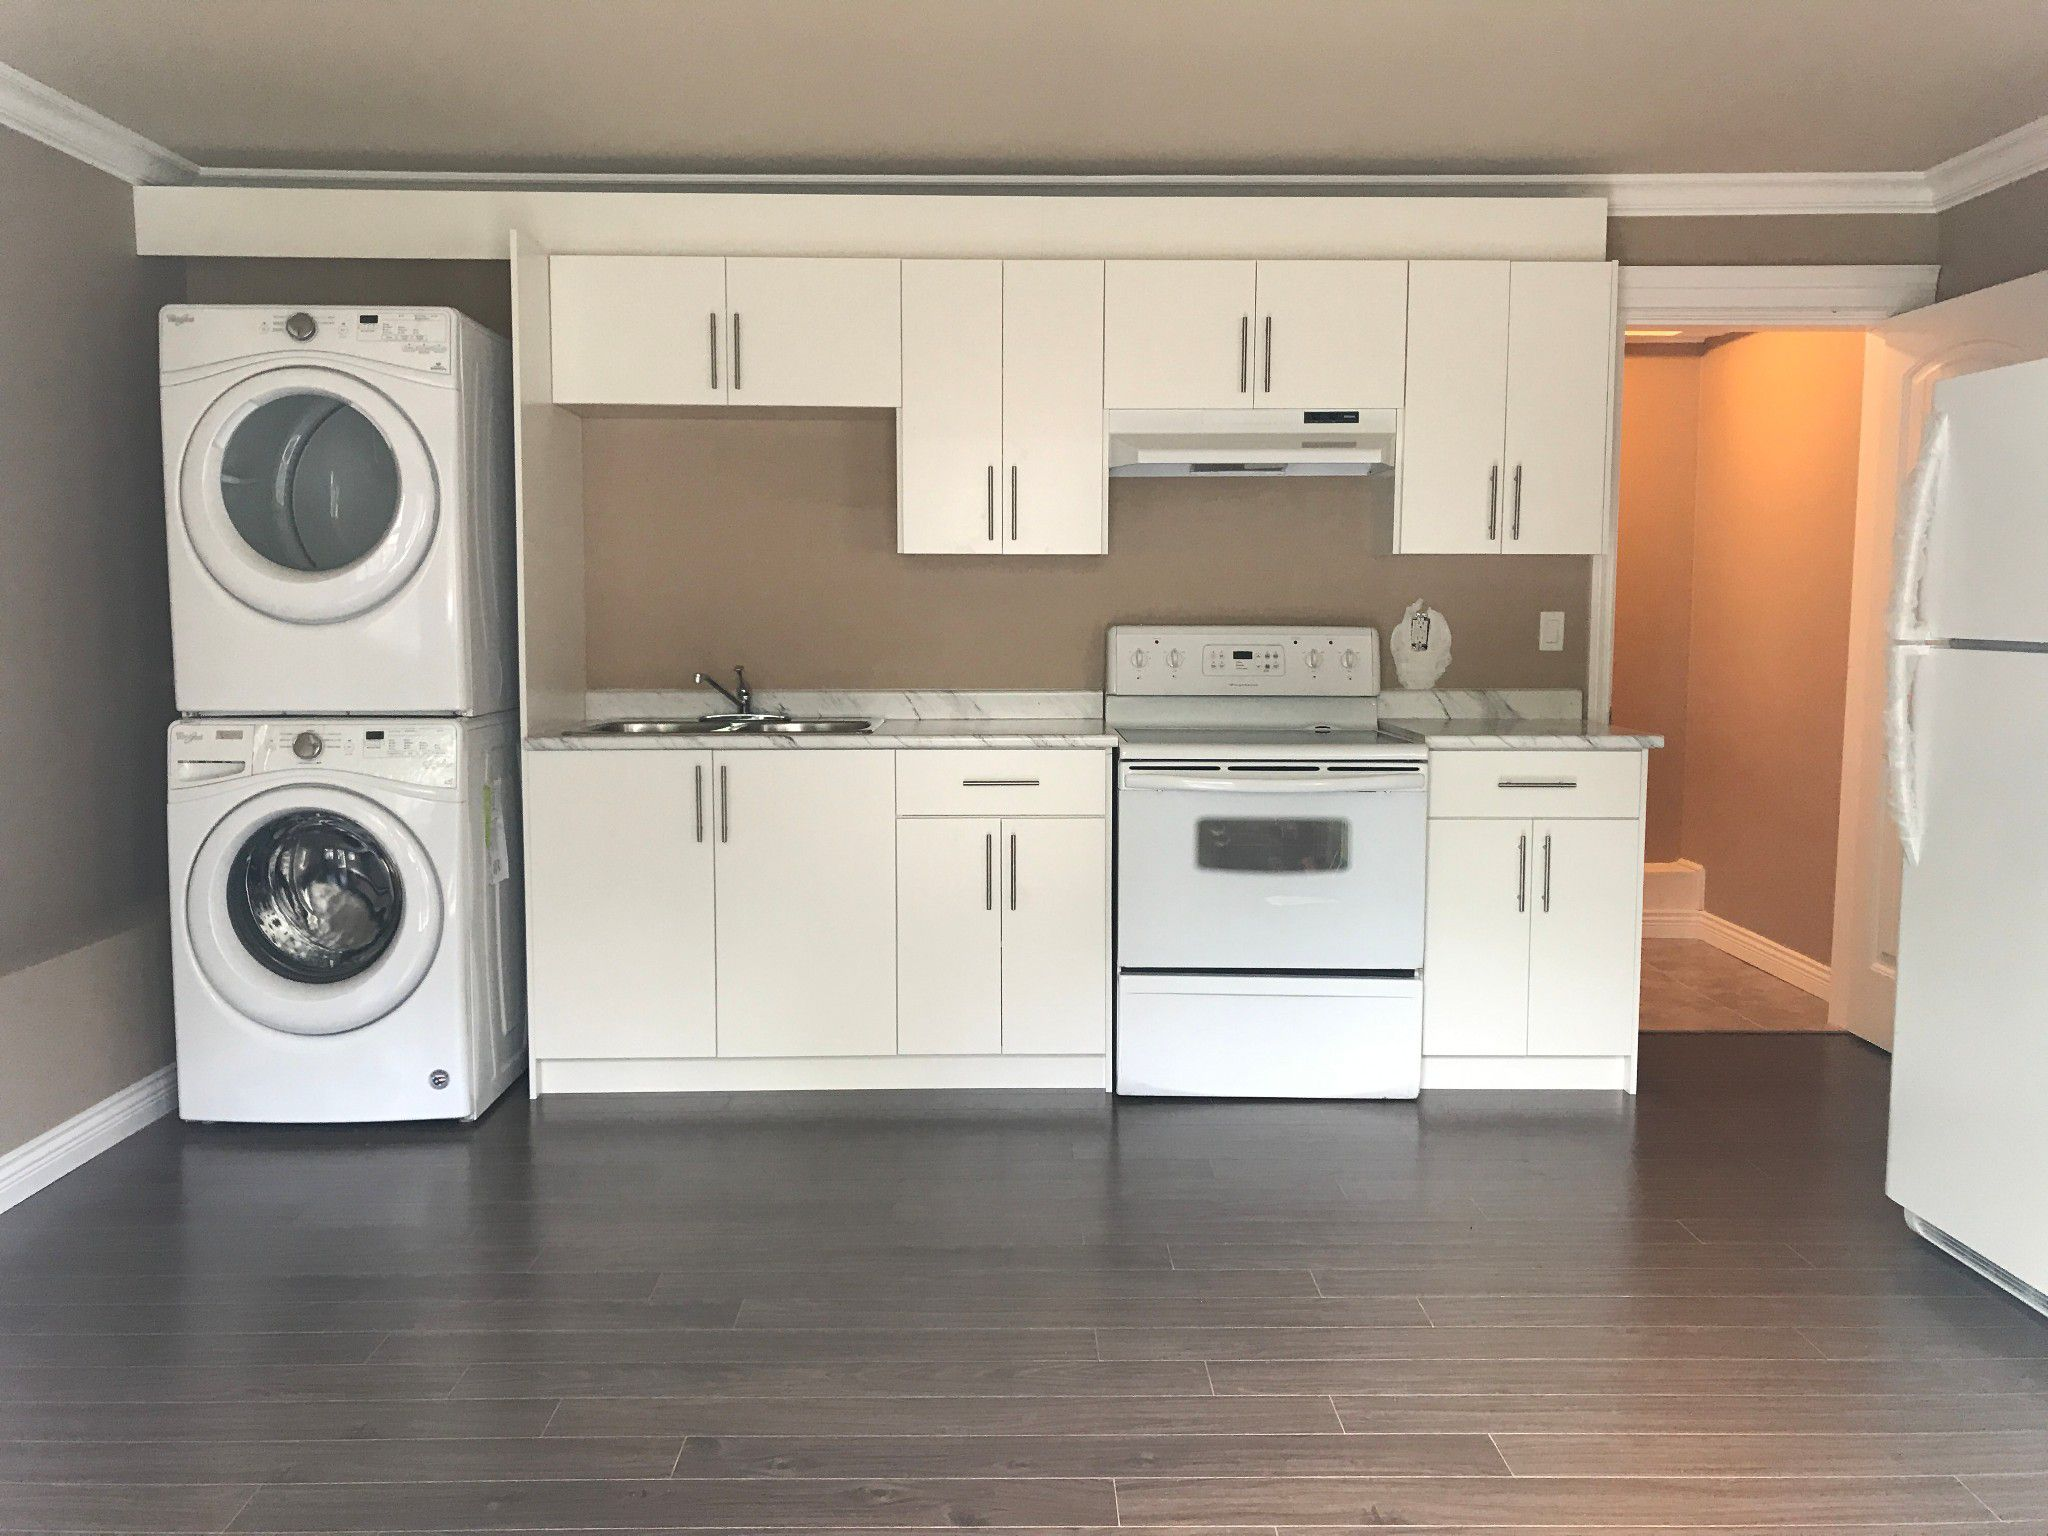 Main Photo: BSMT-B 2191 Martens St. in Abbotsford: Condo for rent